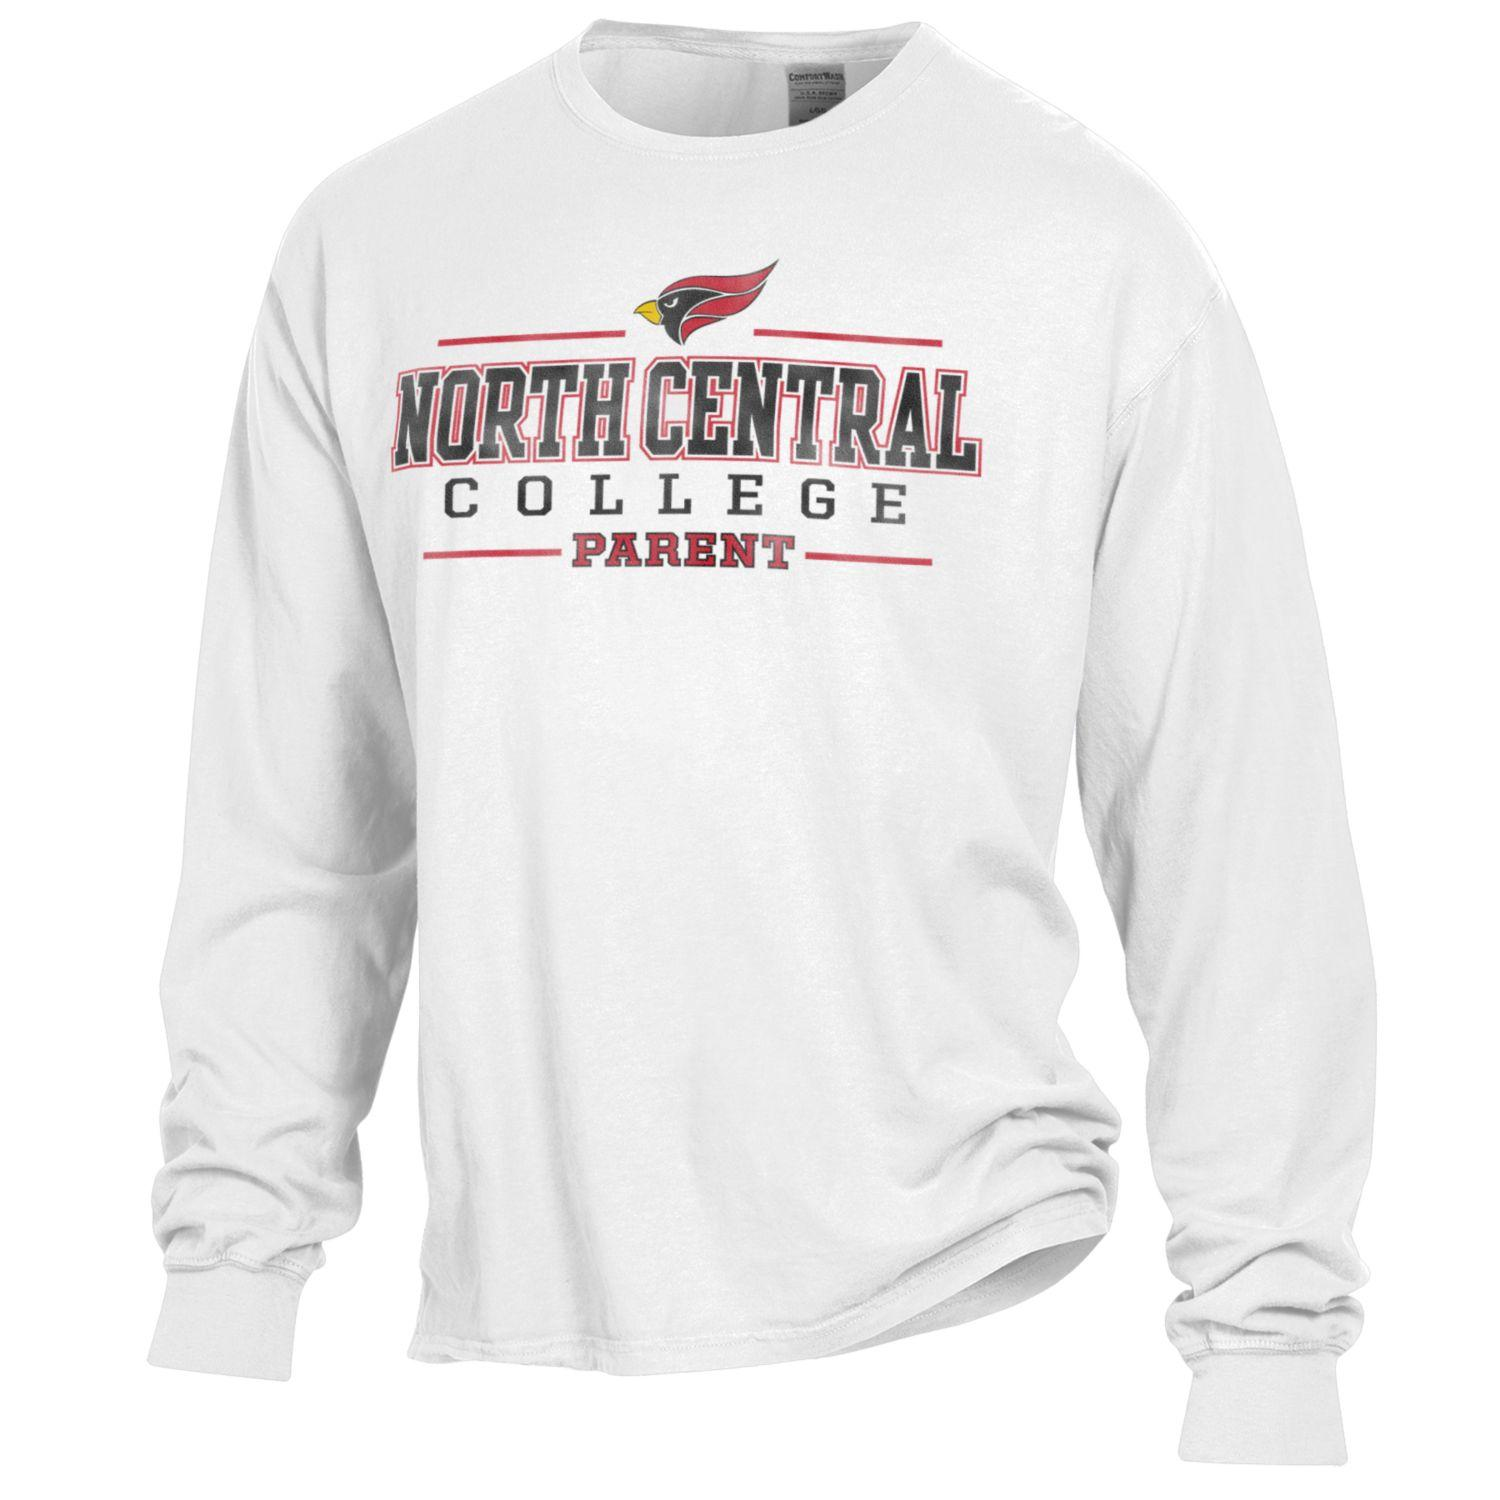 Image for the Parent Long Sleeve Comfort Wash Tee product